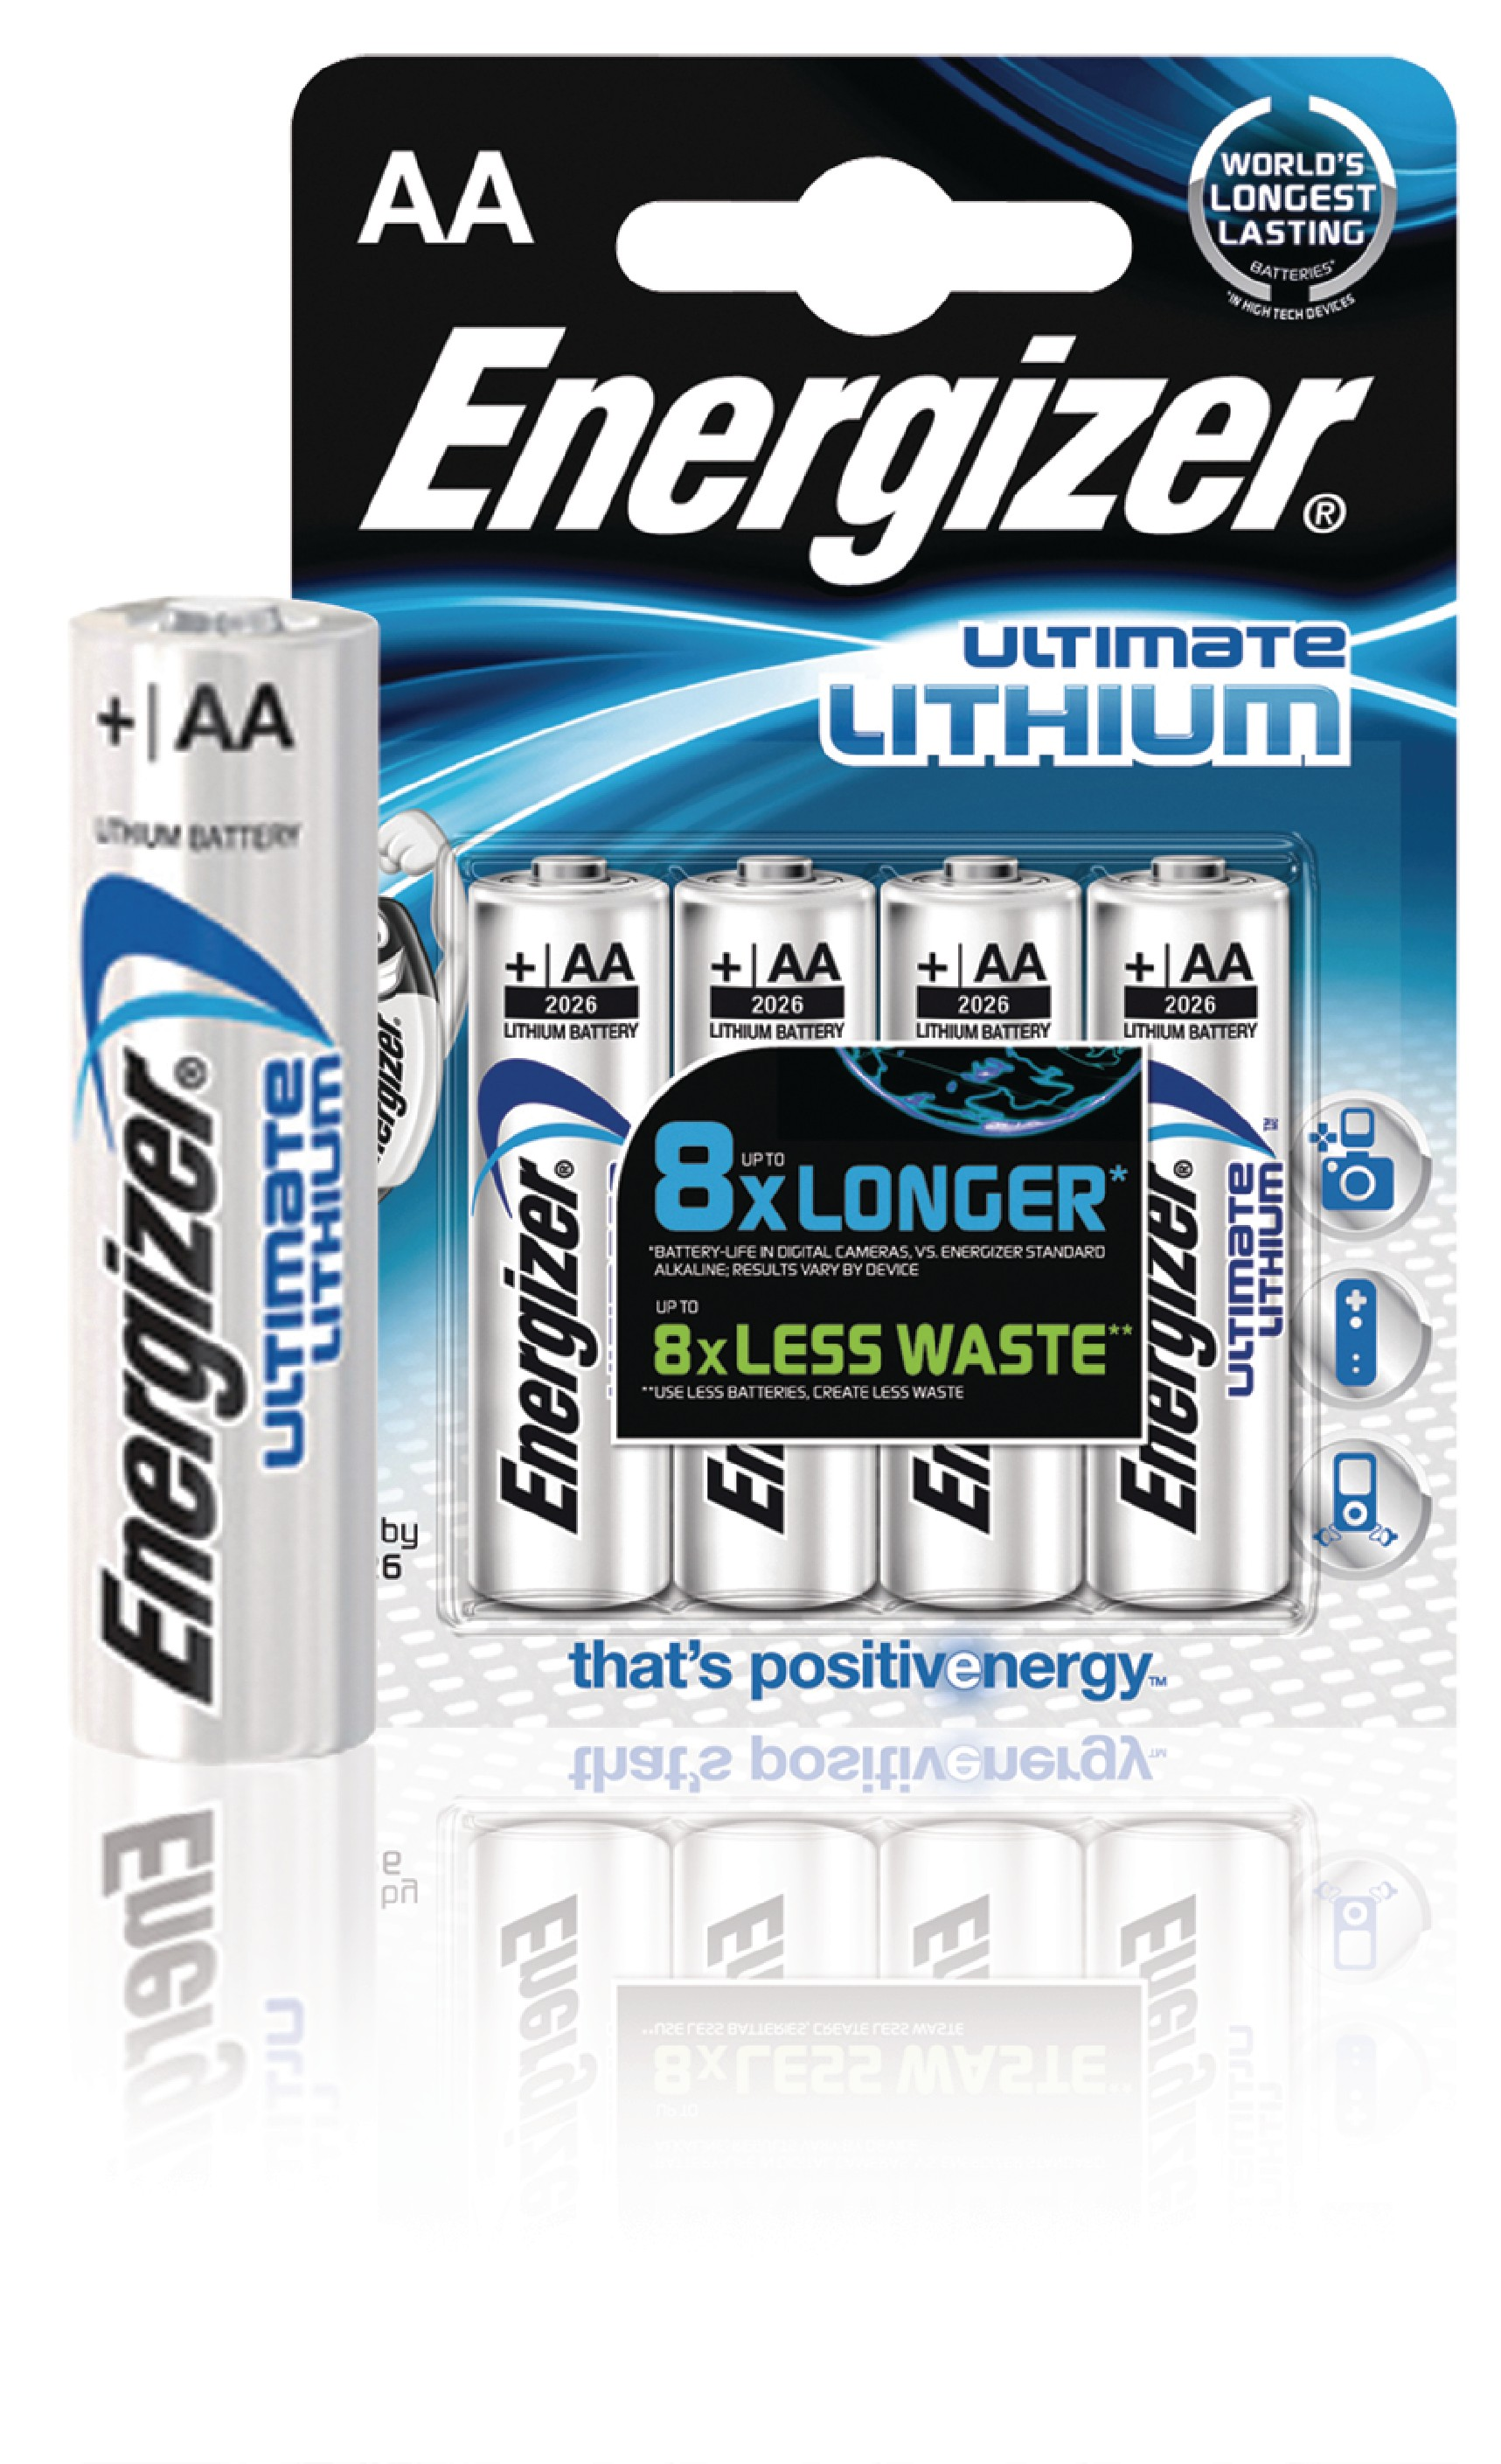 Lithiová baterie Energizer Ultimate AA 1.5V, 4ks, ENLITHIUMAAP4